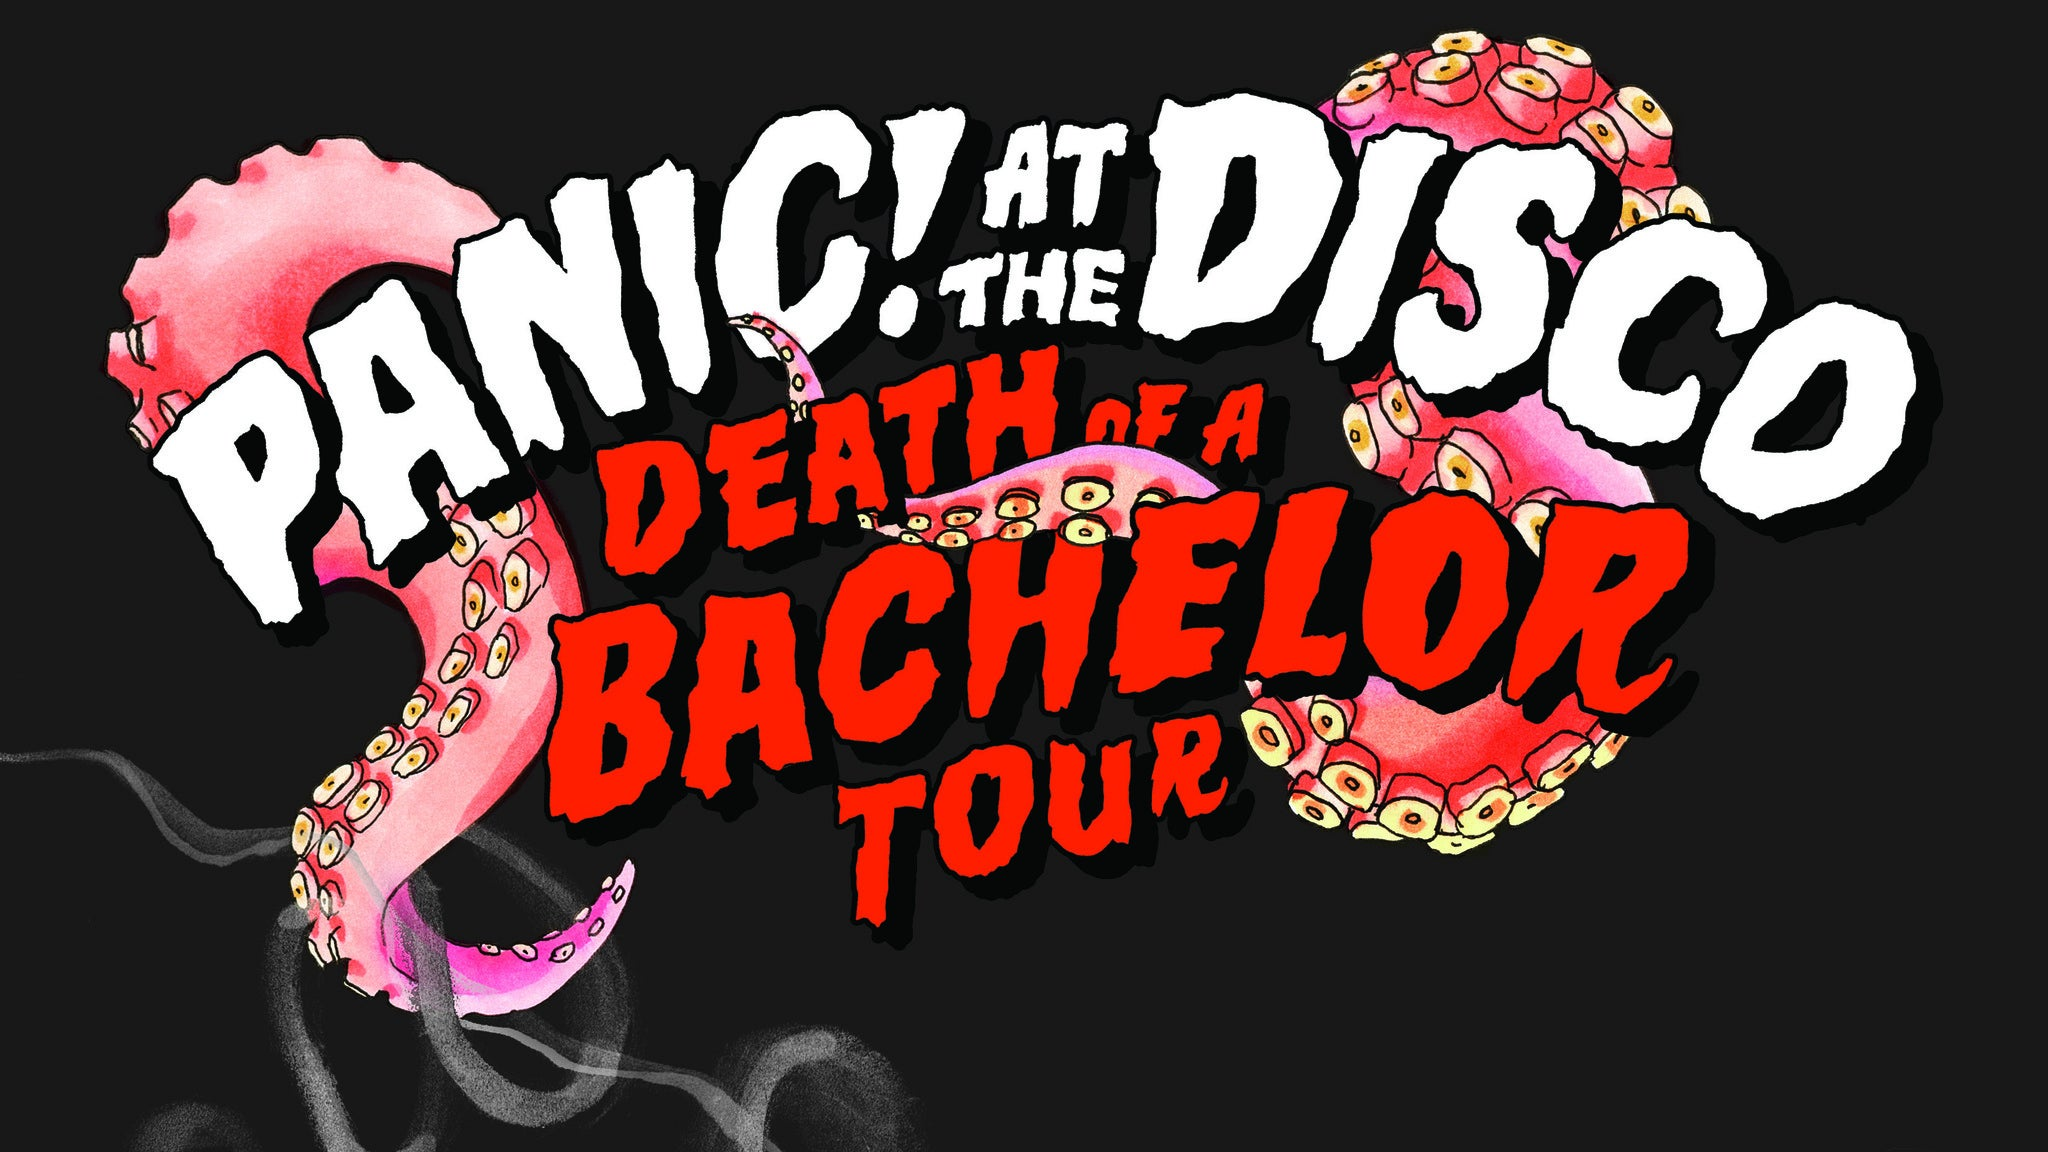 Panic! At The Disco - Death of A Bachelor Tour - Oakland, CA 94621